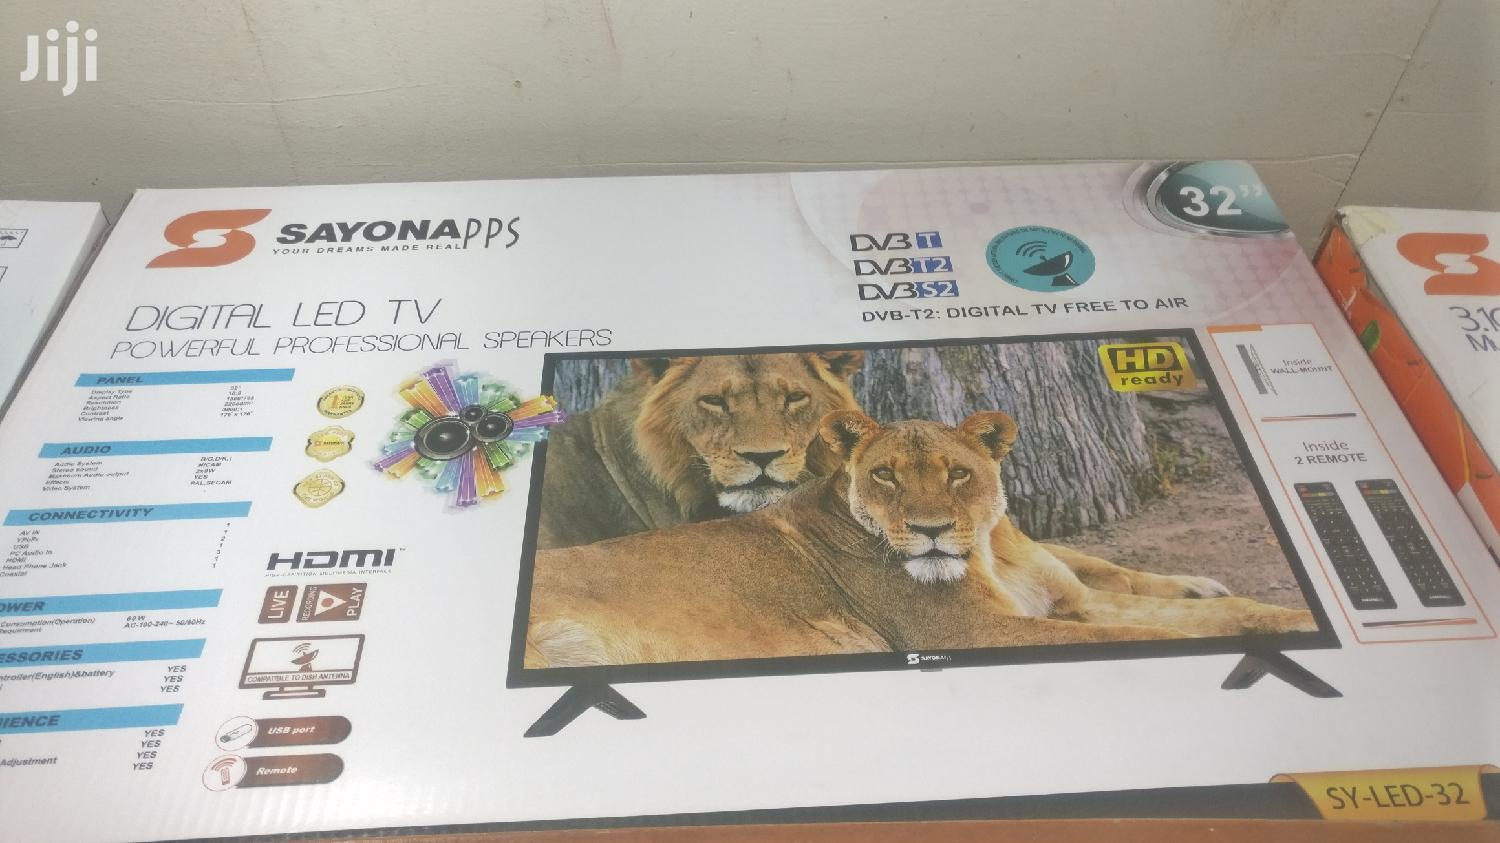 Sayona TV 32 Inches